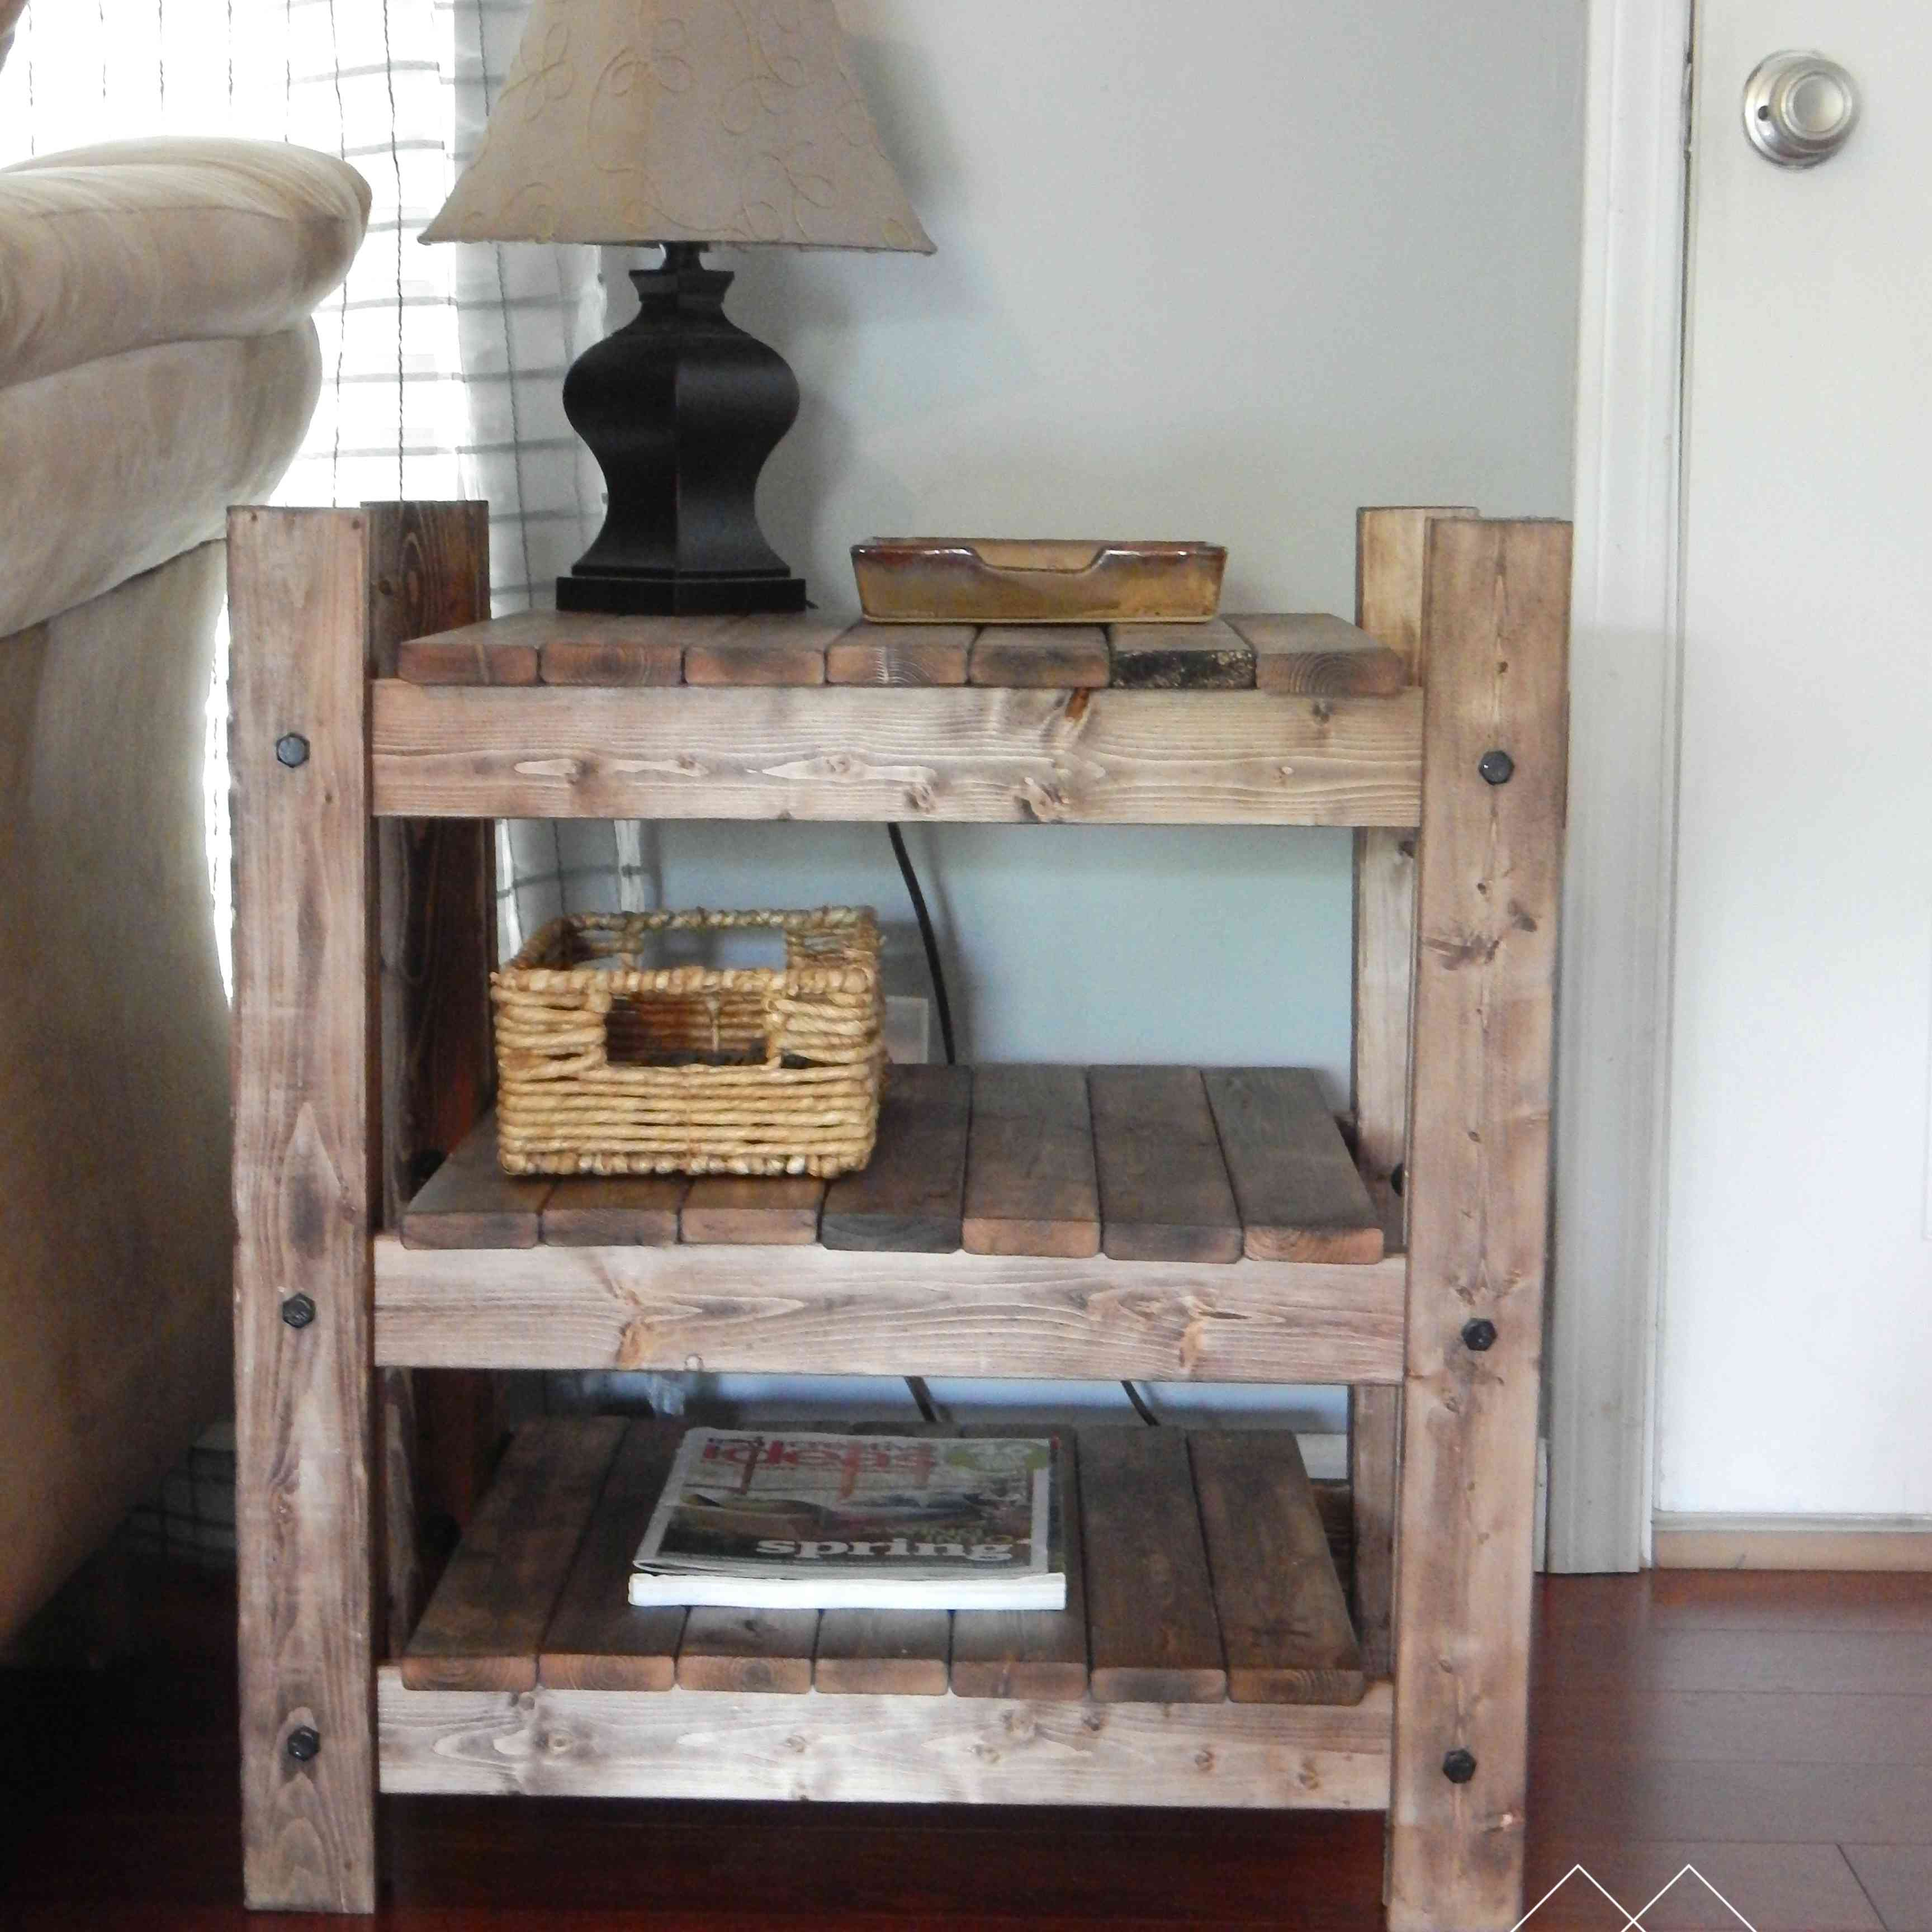 An end table with a lamp, basket, and book on it